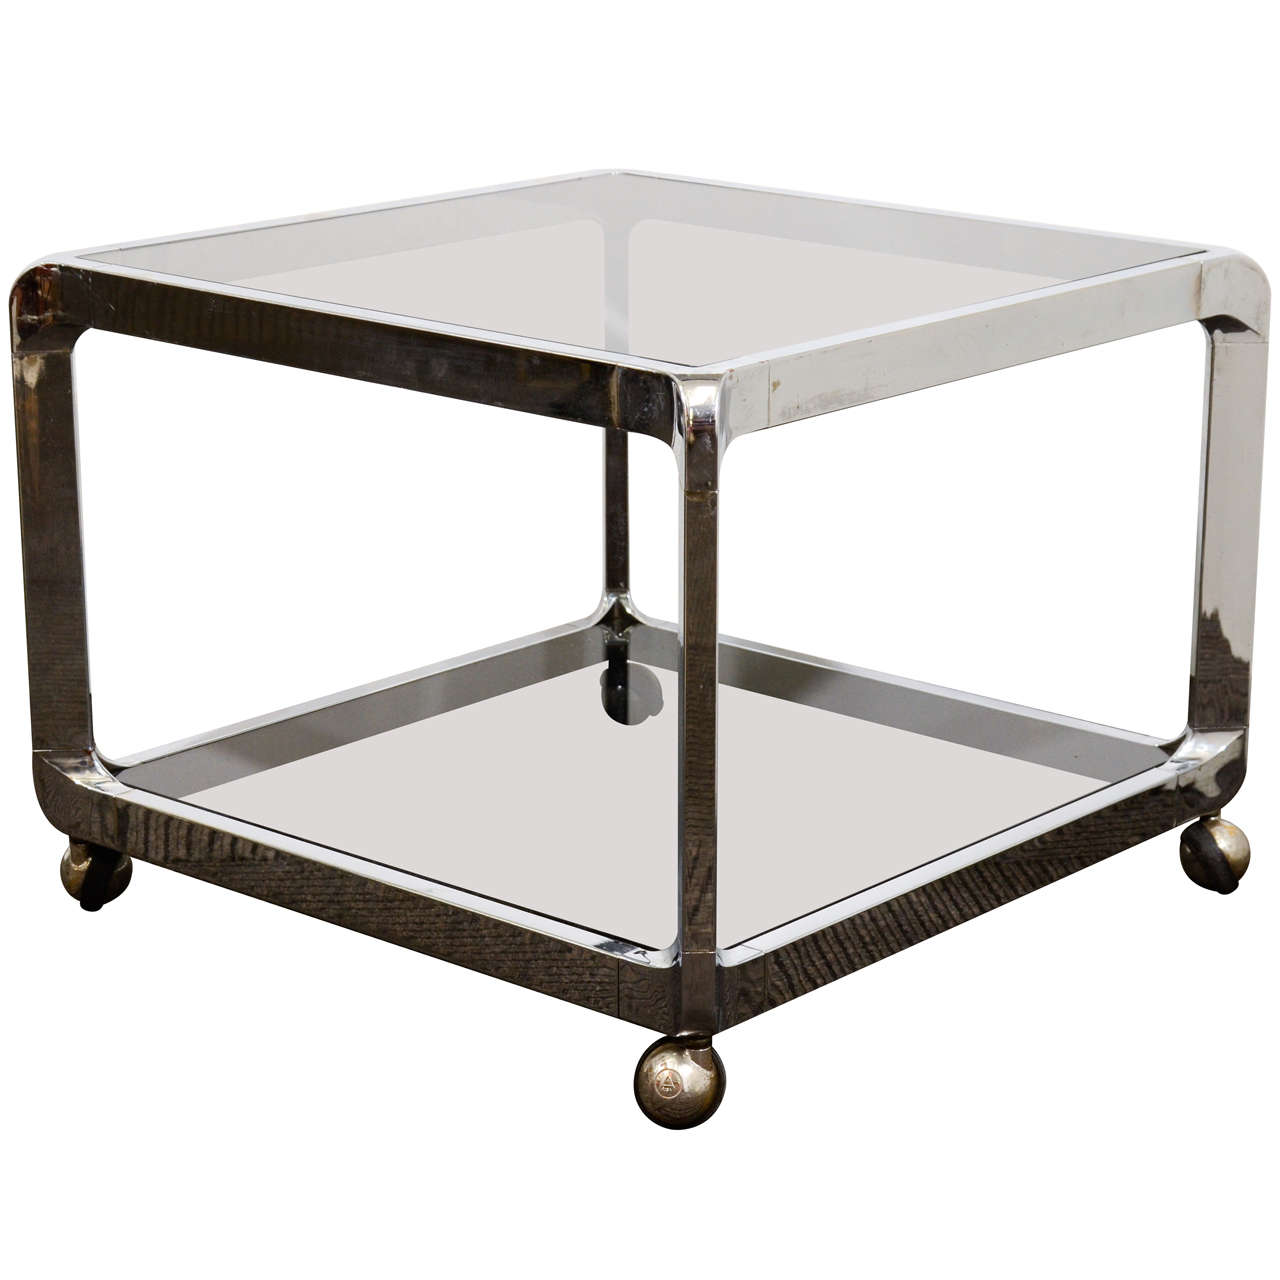 Modern Glass Coffee Table With Wheels: Mid Century Chrome And Glass Two-Tier Side Table With